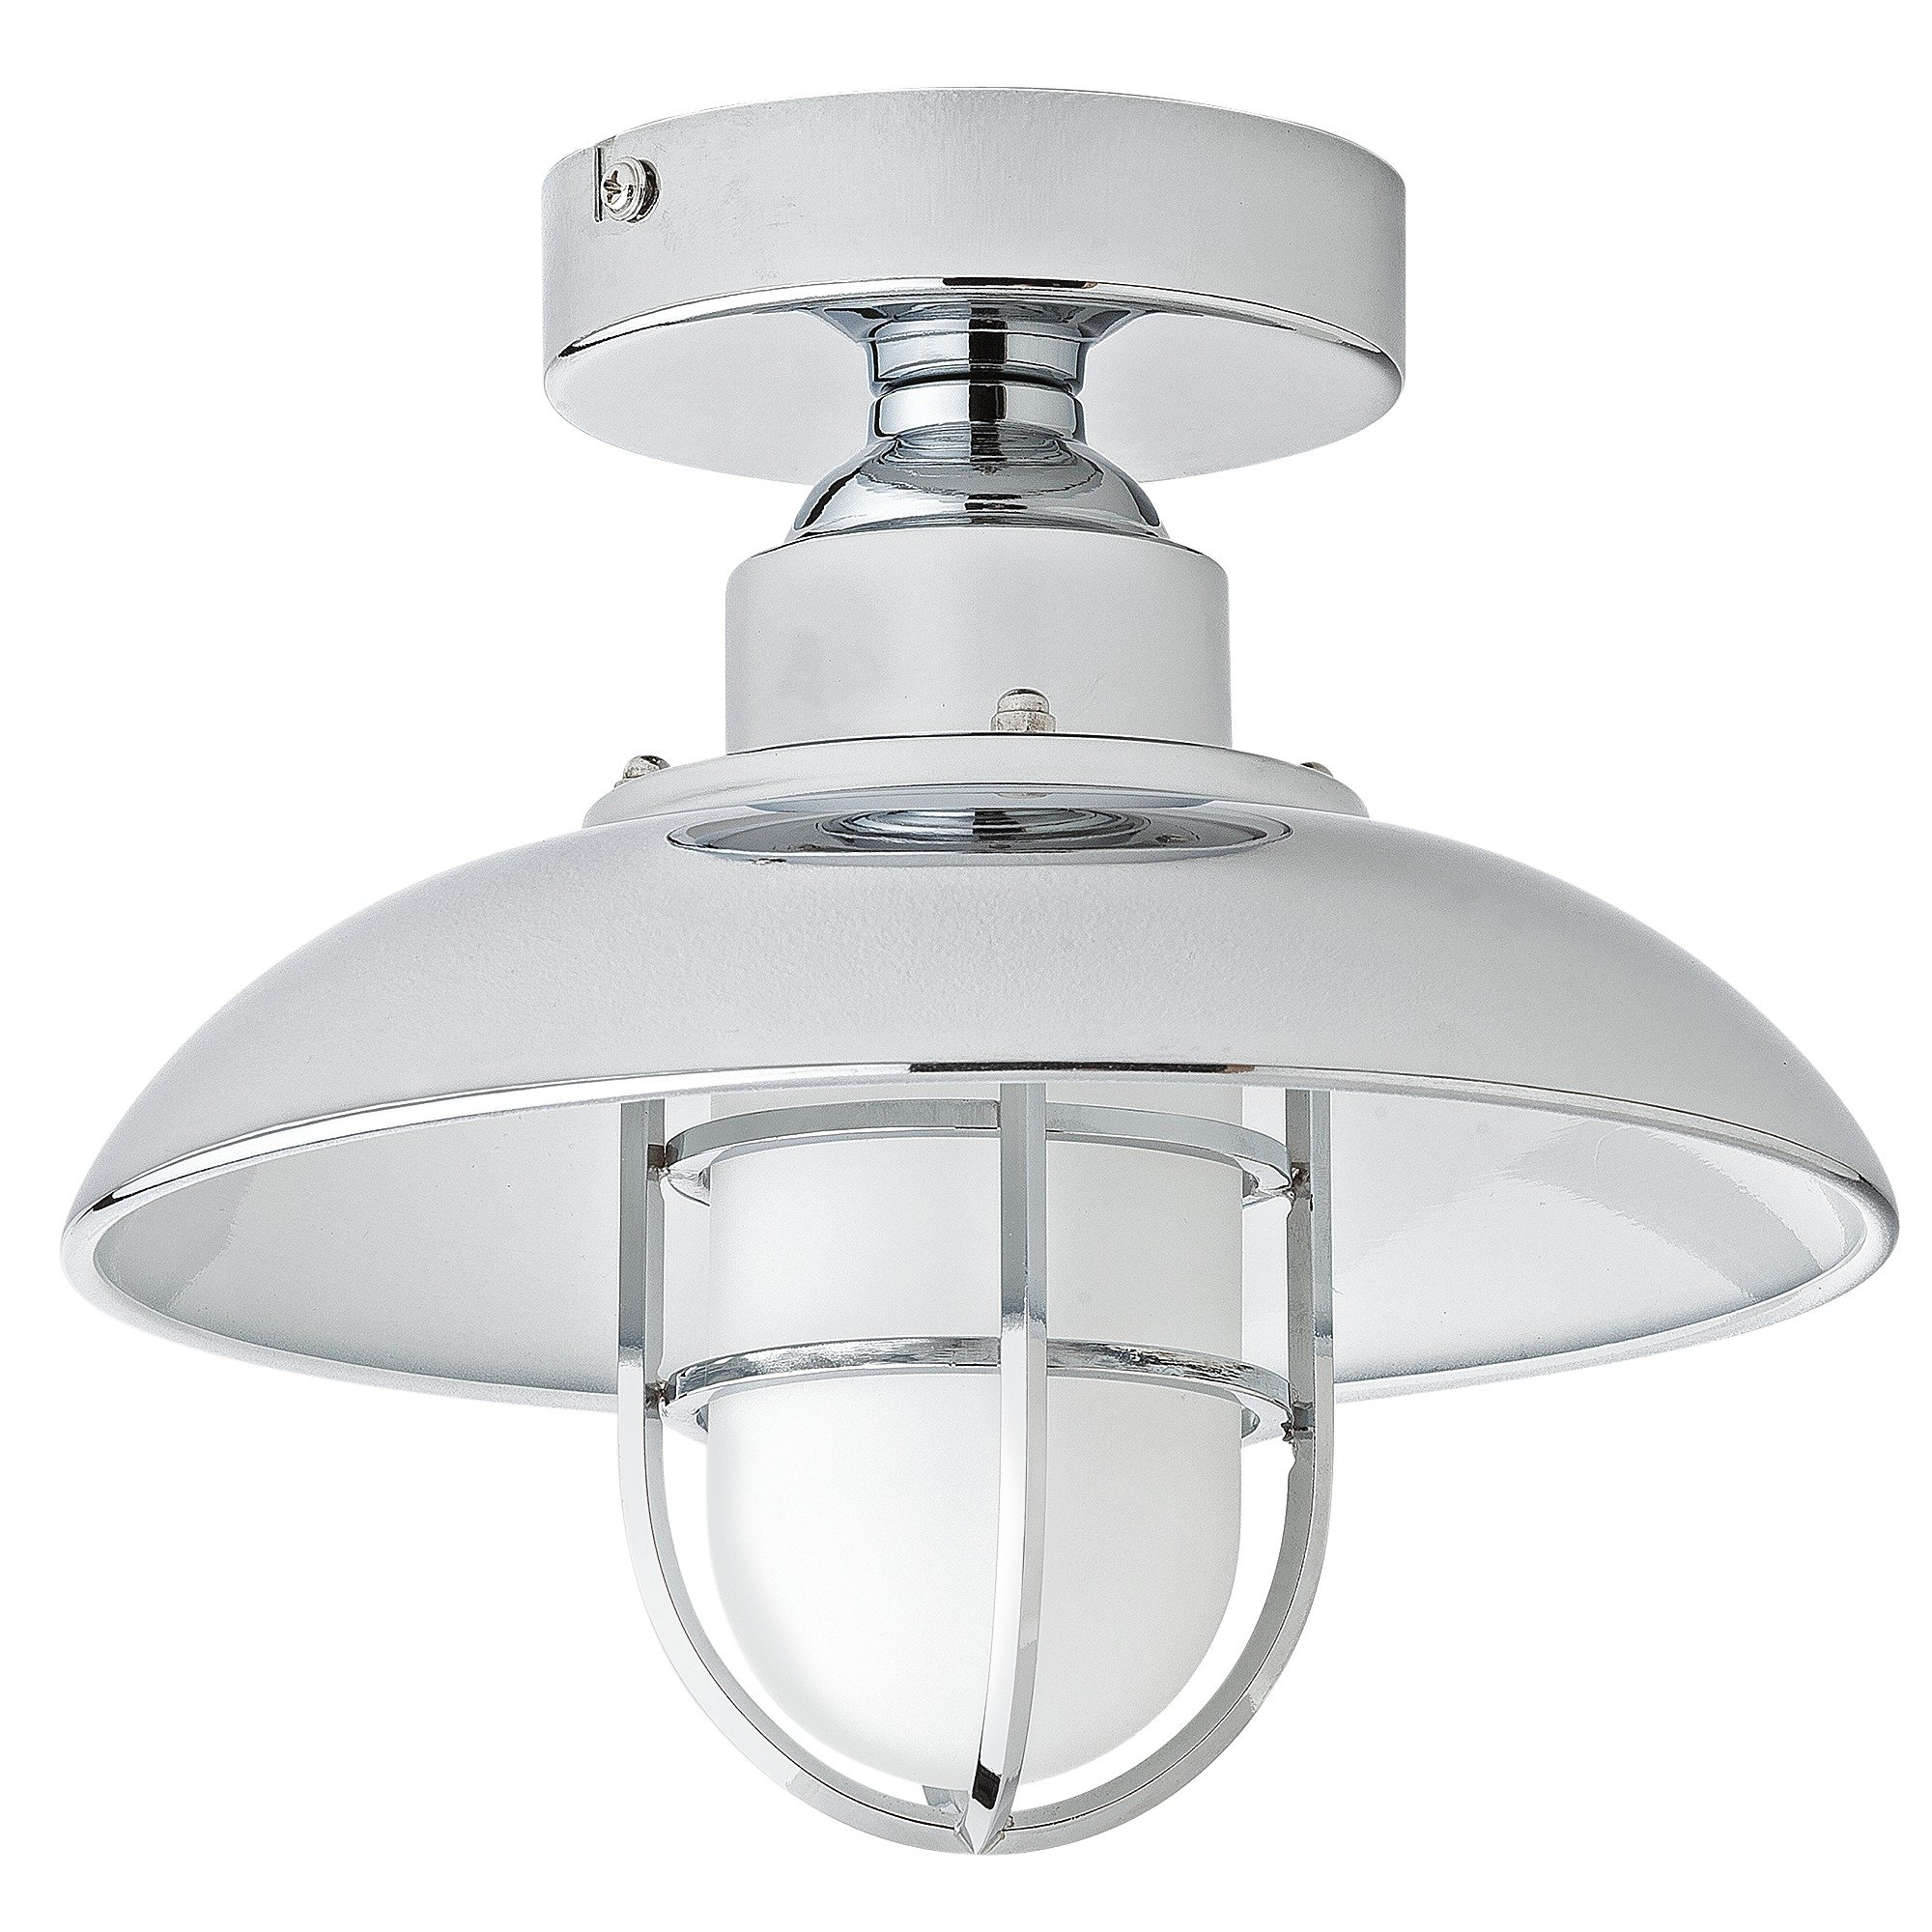 bathroom lights uk buy collection kildare fisherman lantern bathroom light 10964